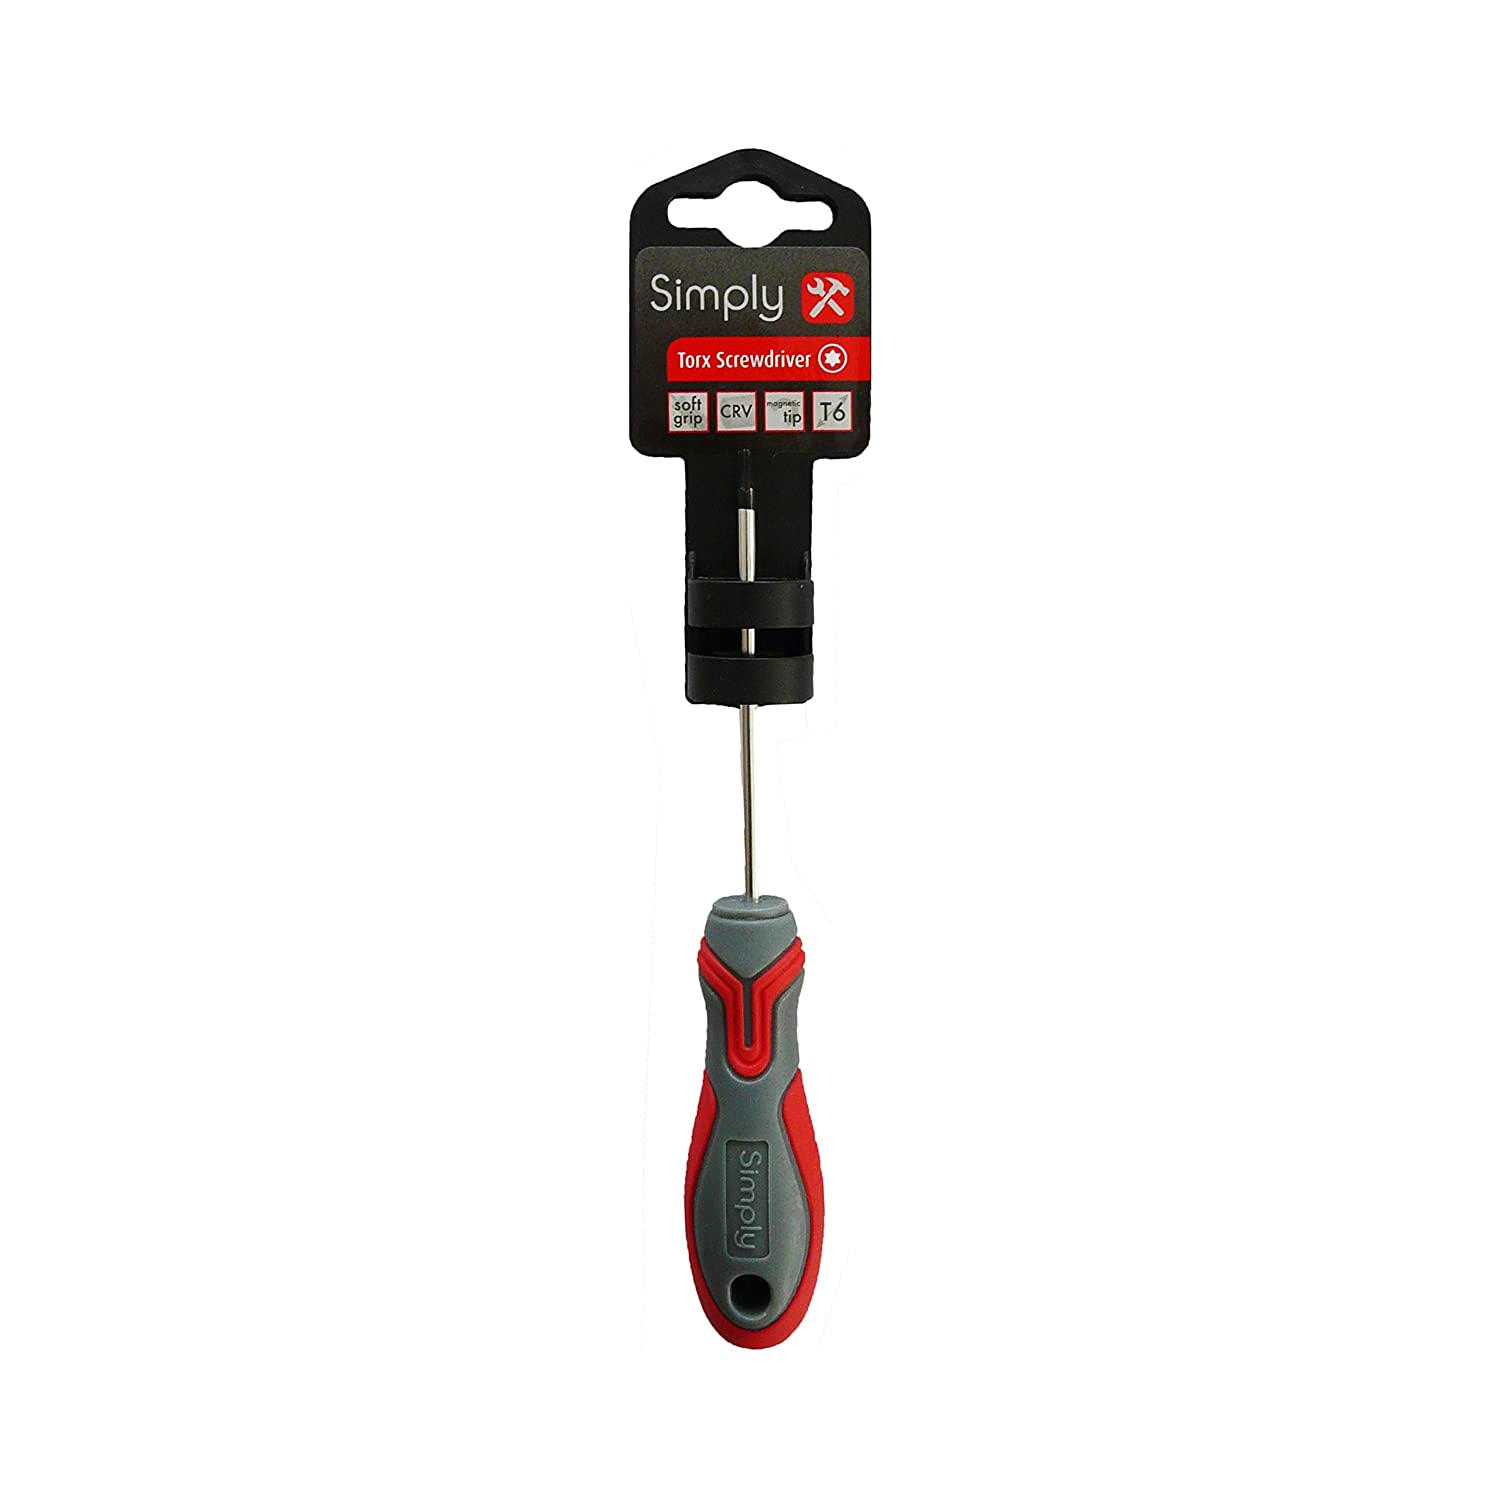 Simply Tools TORX06 T6 Torx Headed Screwdriver with  greater strength and durability extra grip on the screws head